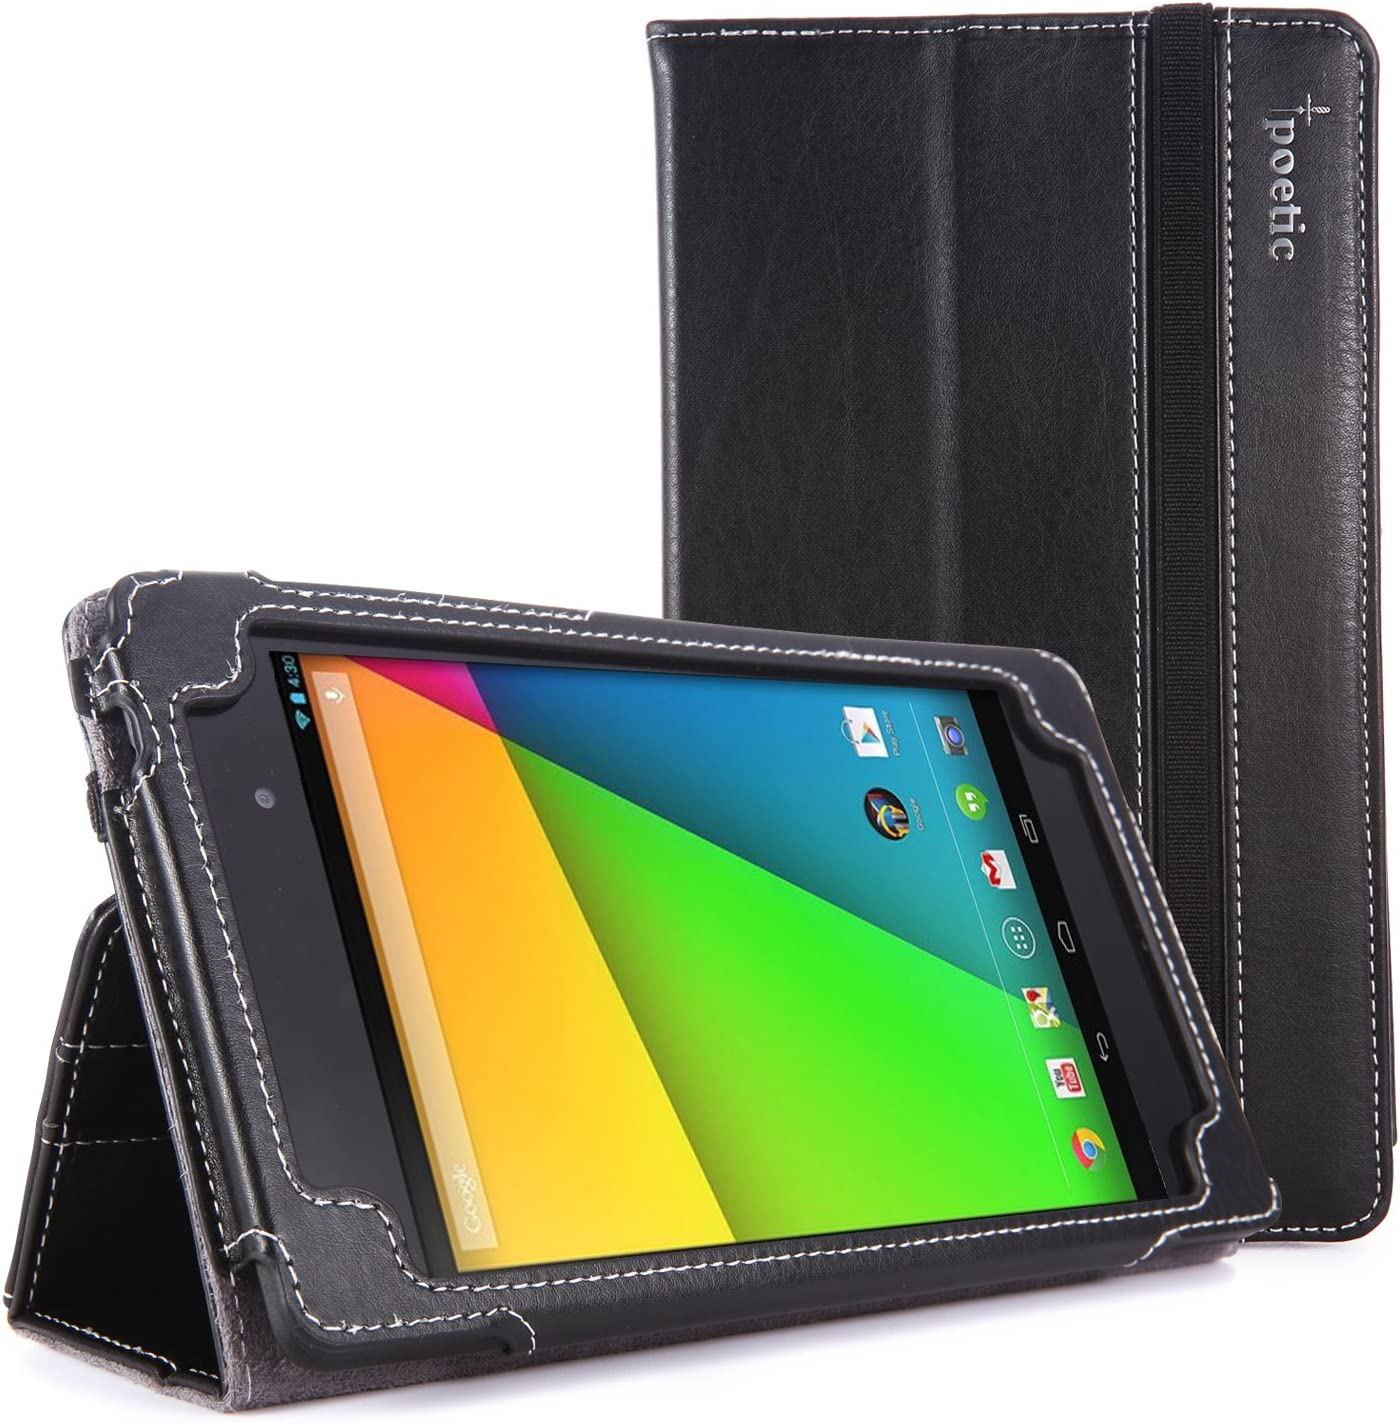 Amazon Com Google Nexus 7 2013 Case Poetic Google Nexus 7 2013 Case Slimbook Series Slimfit Professional Pu Leather Slim Folio Case For Google Nexus 7 2nd Gen 2013 Black 3 Year Manufacturer Warranty From Poetic